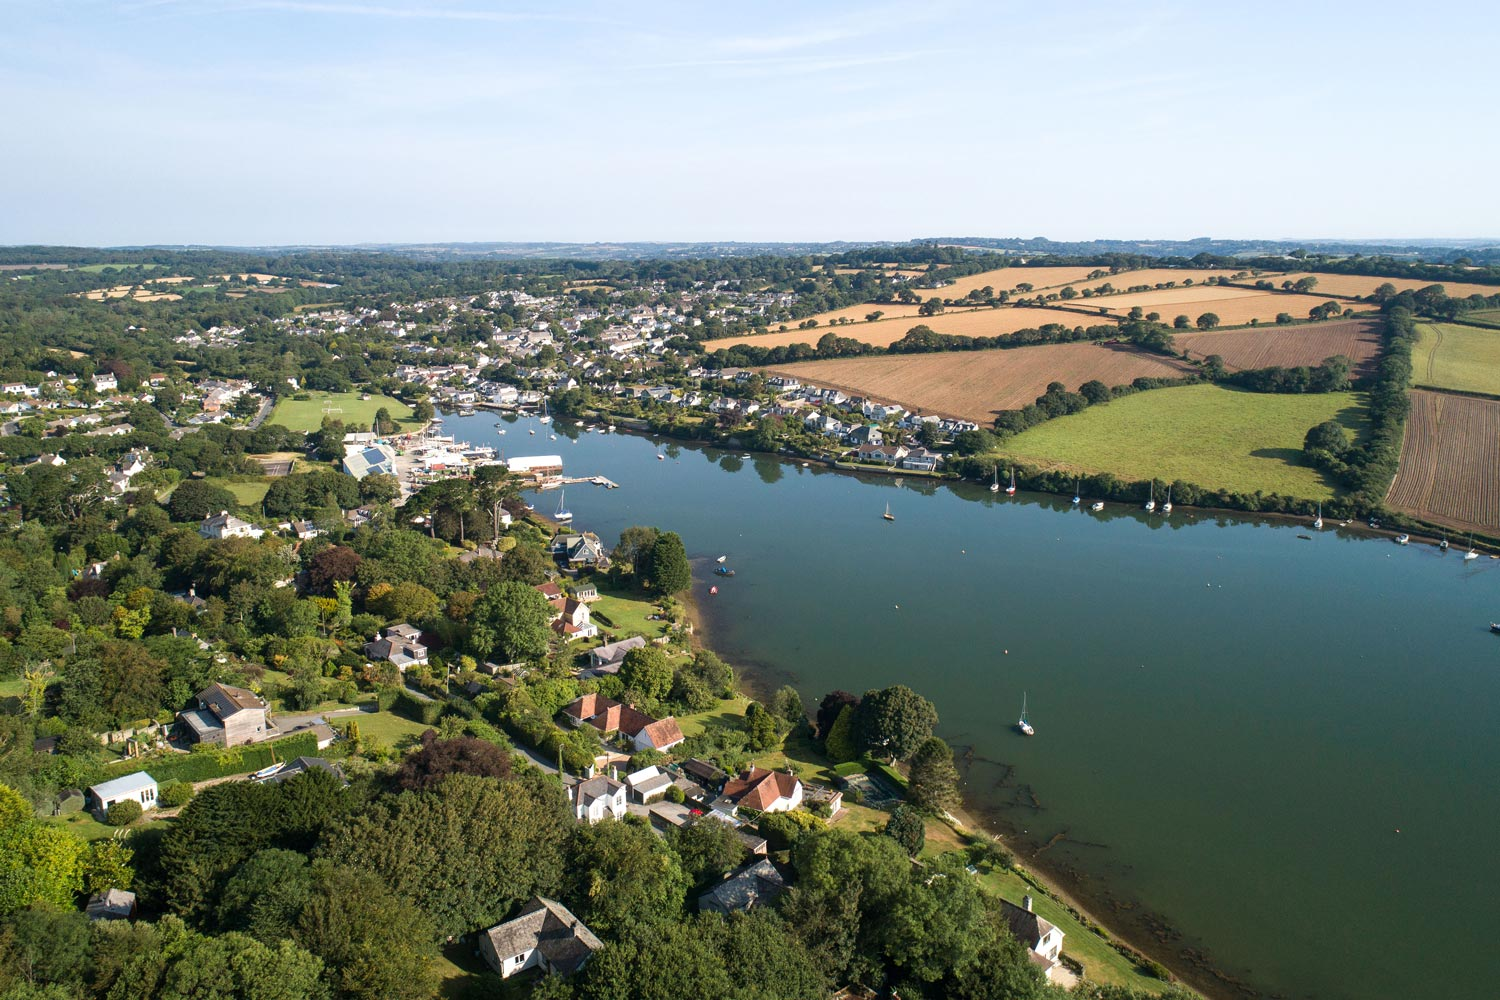 Drone Photograph of Mylor